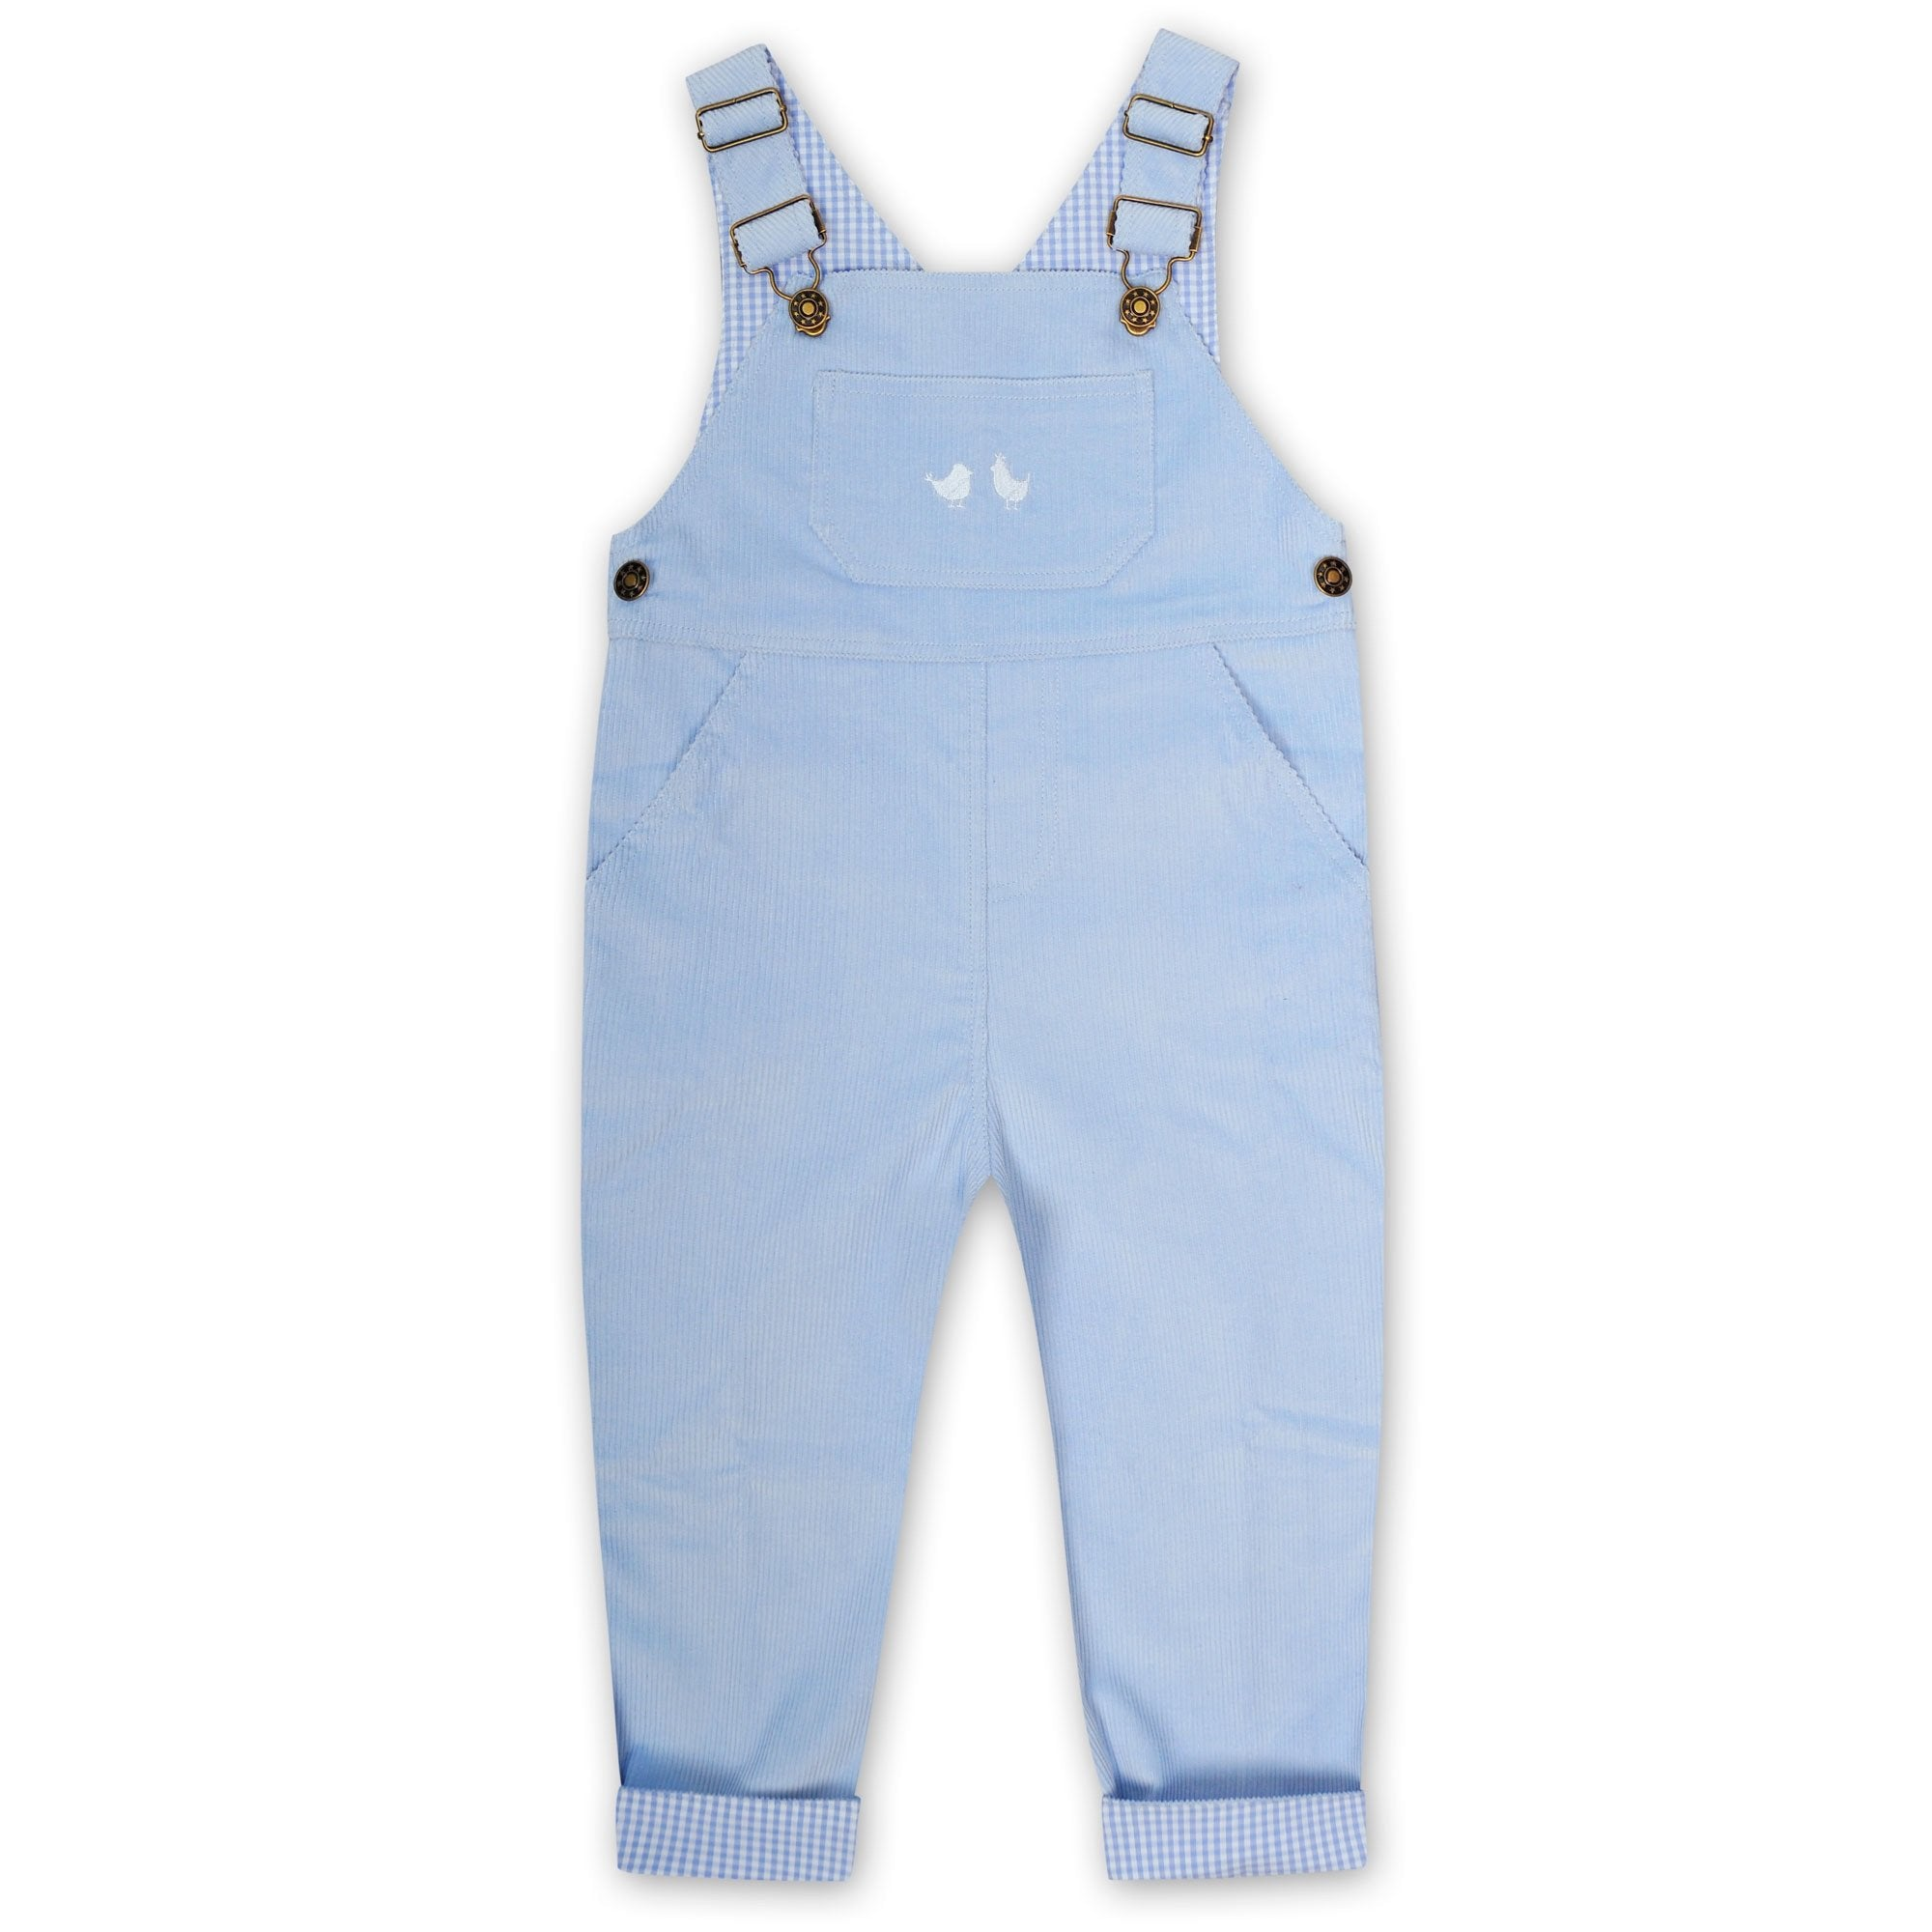 BOYS PALE BLUE GINGHAM COLLARED ROMPER